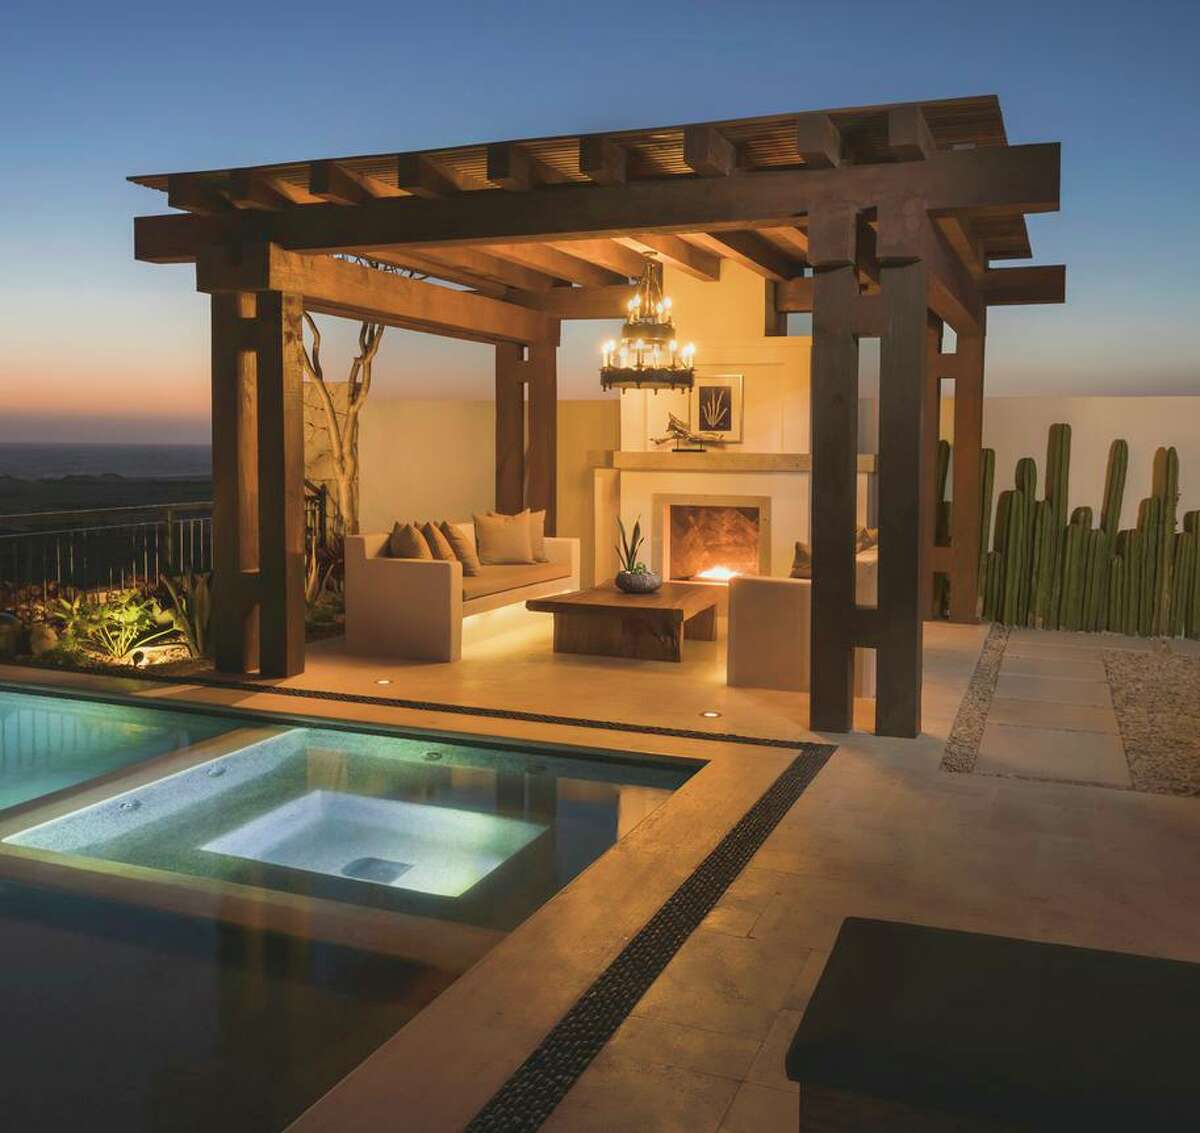 The Norman Estates at Rancho San Lucas in Los Cabos, Mexico features bespoke residences with enticing exterior spaces, like pools, hot tubs and outdoor fireplaces.